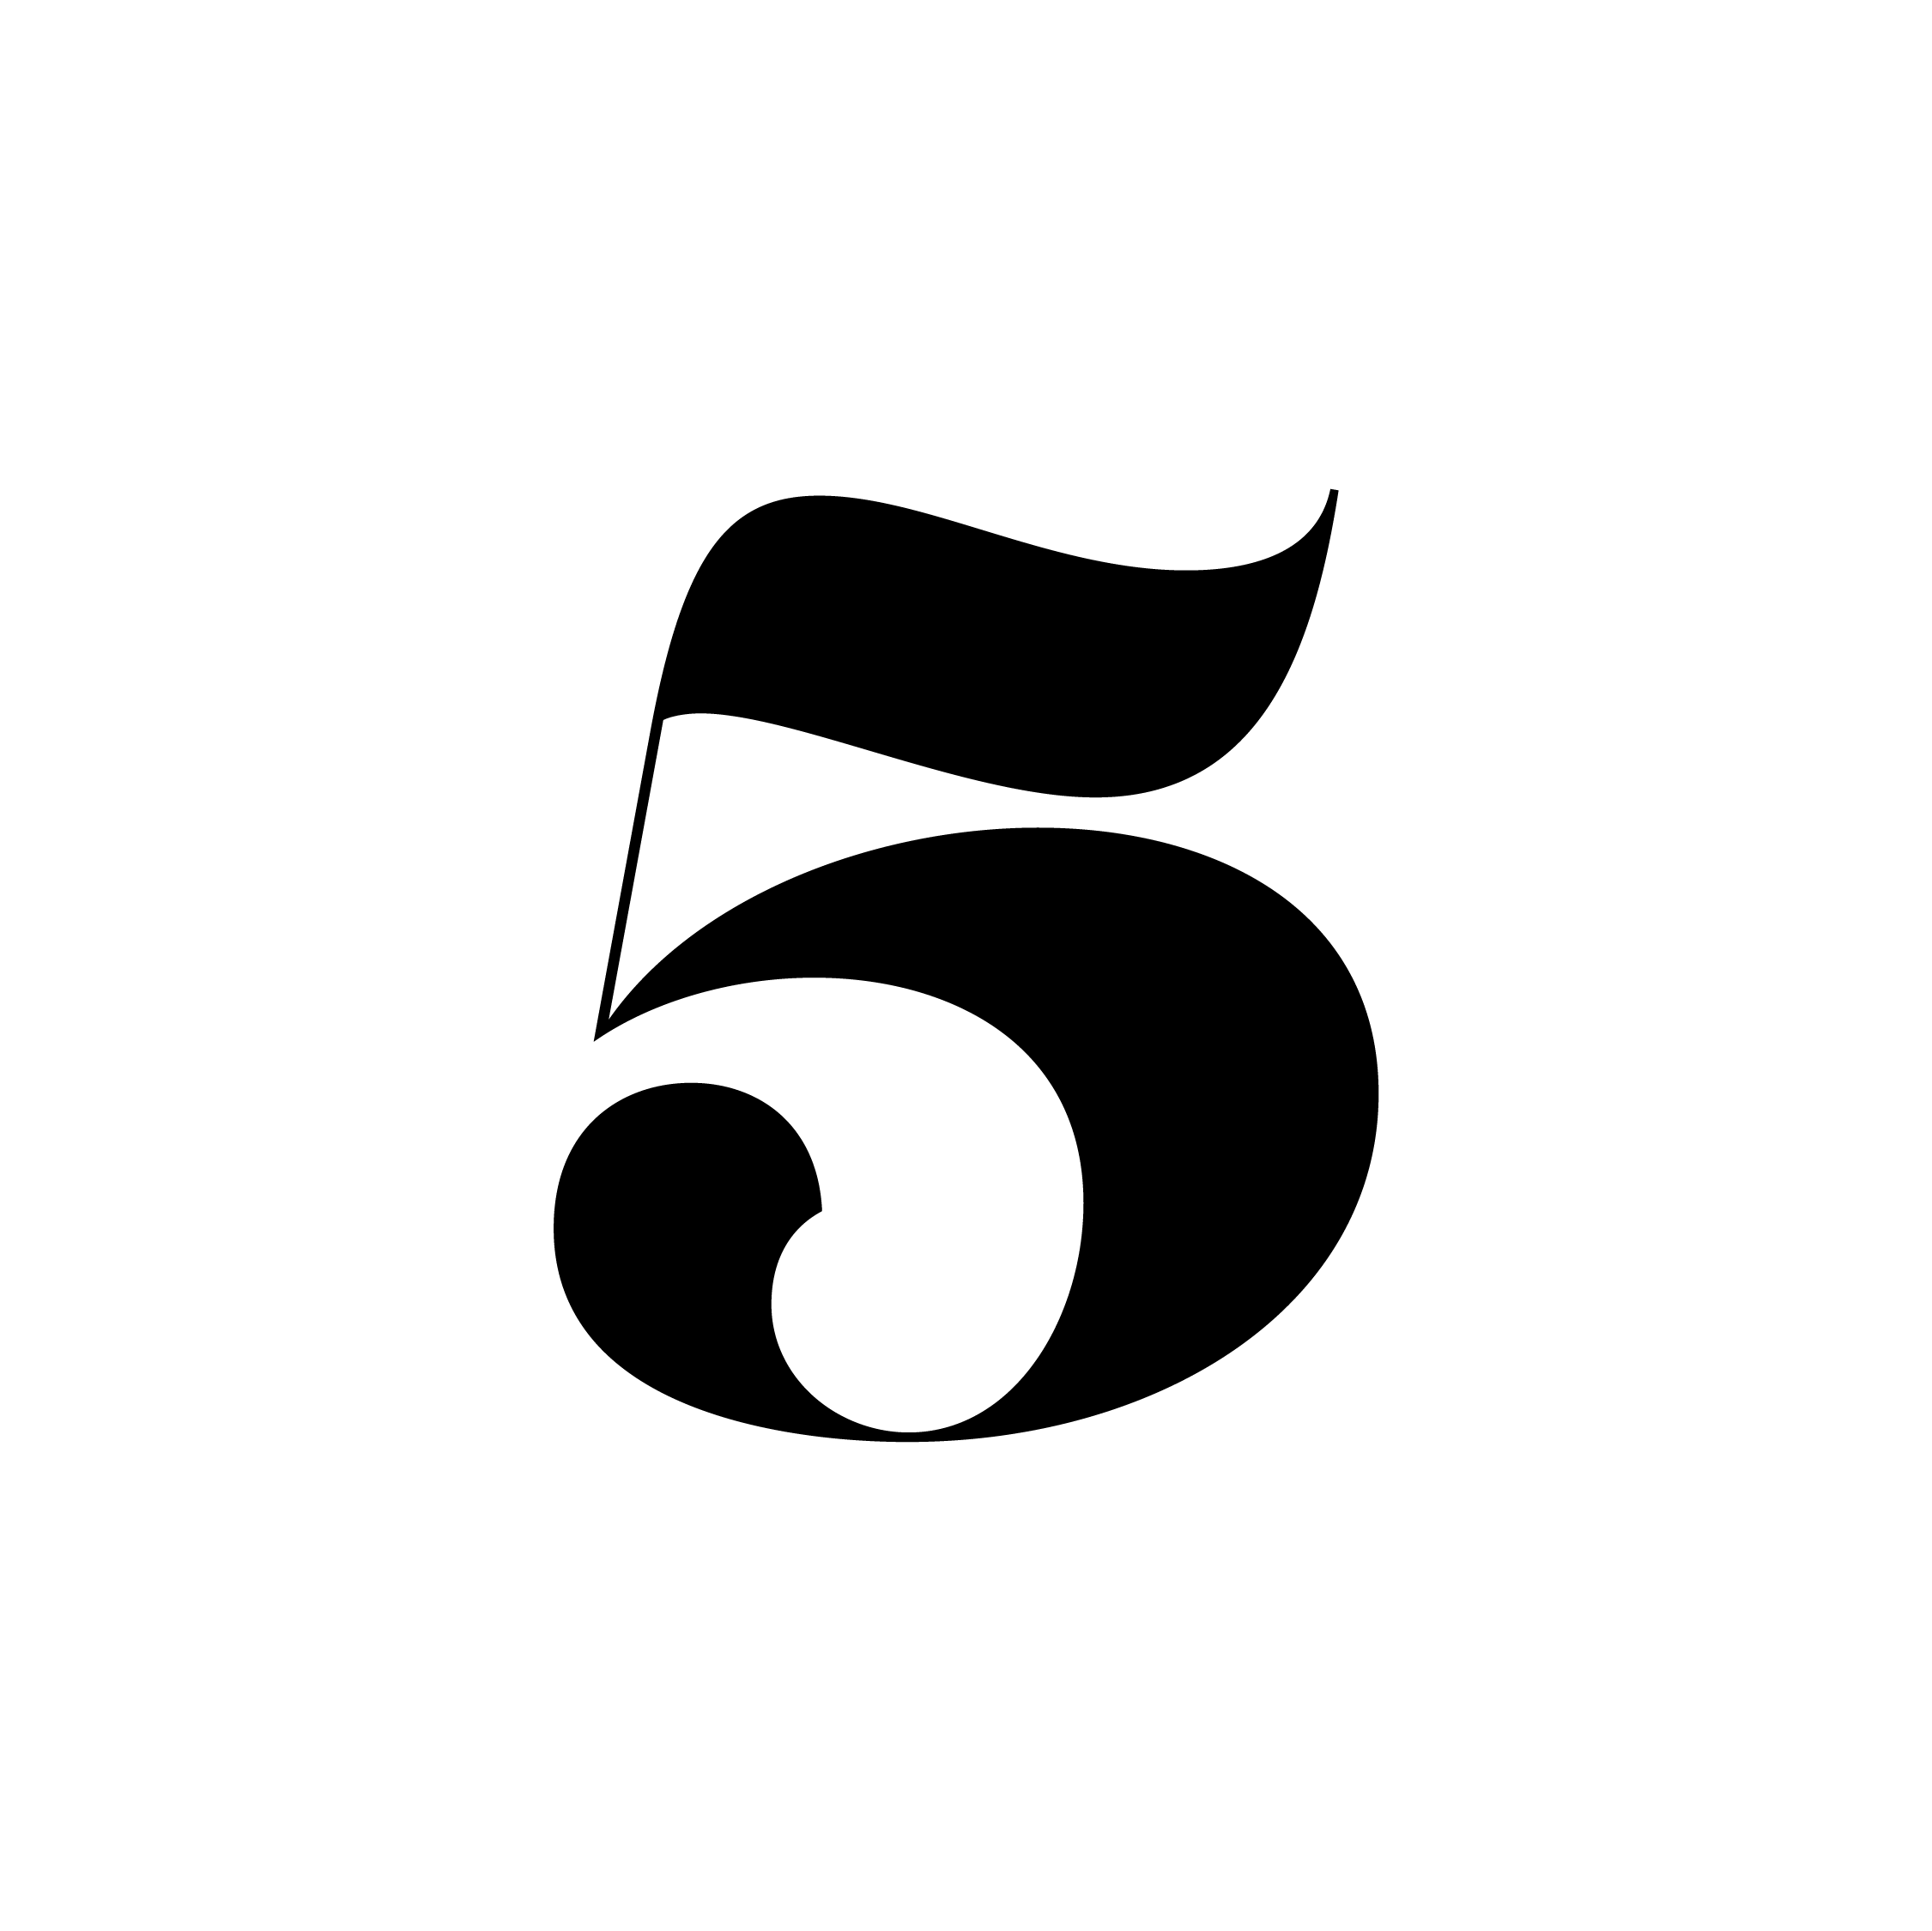 Numbers-05.png